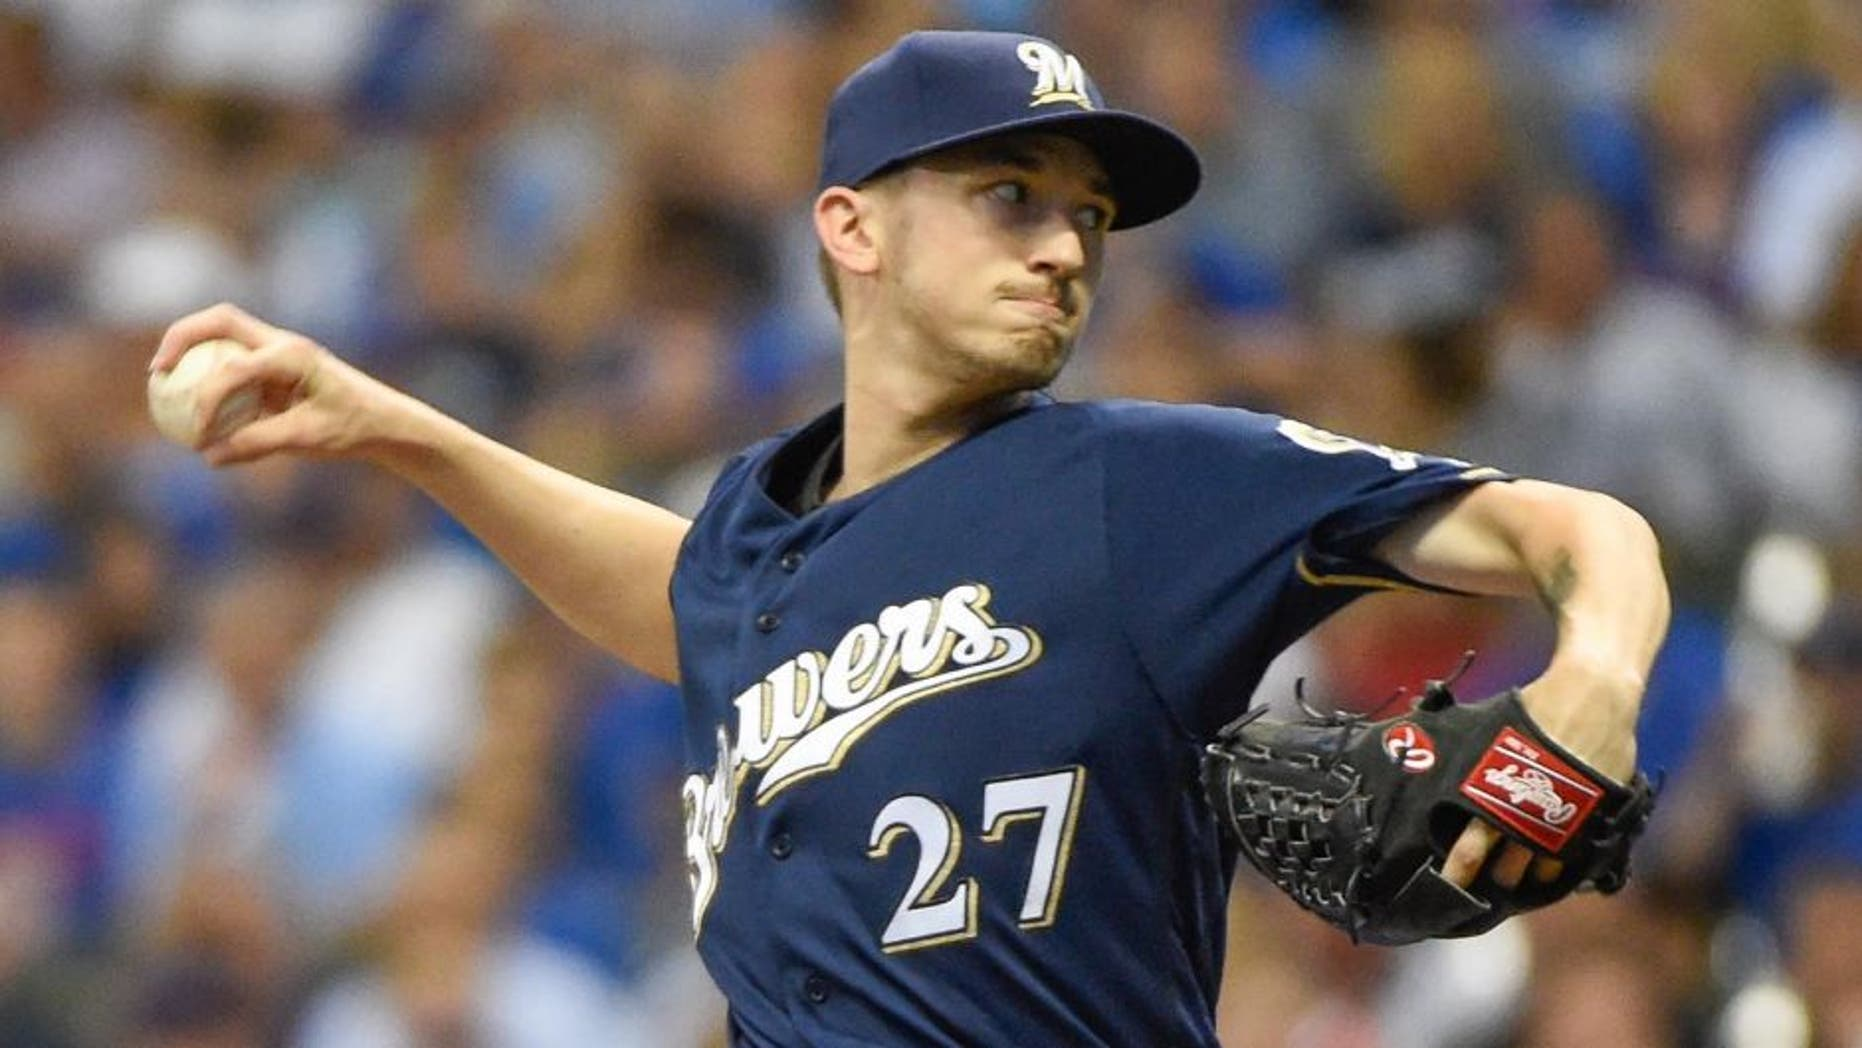 Milwaukee Brewers starting pitcher Zach Davies throws during the first inning of a baseball game against the Chicago Cubs, Saturday, July 23, 2016, in Milwaukee. (AP Photo/Benny Sieu)